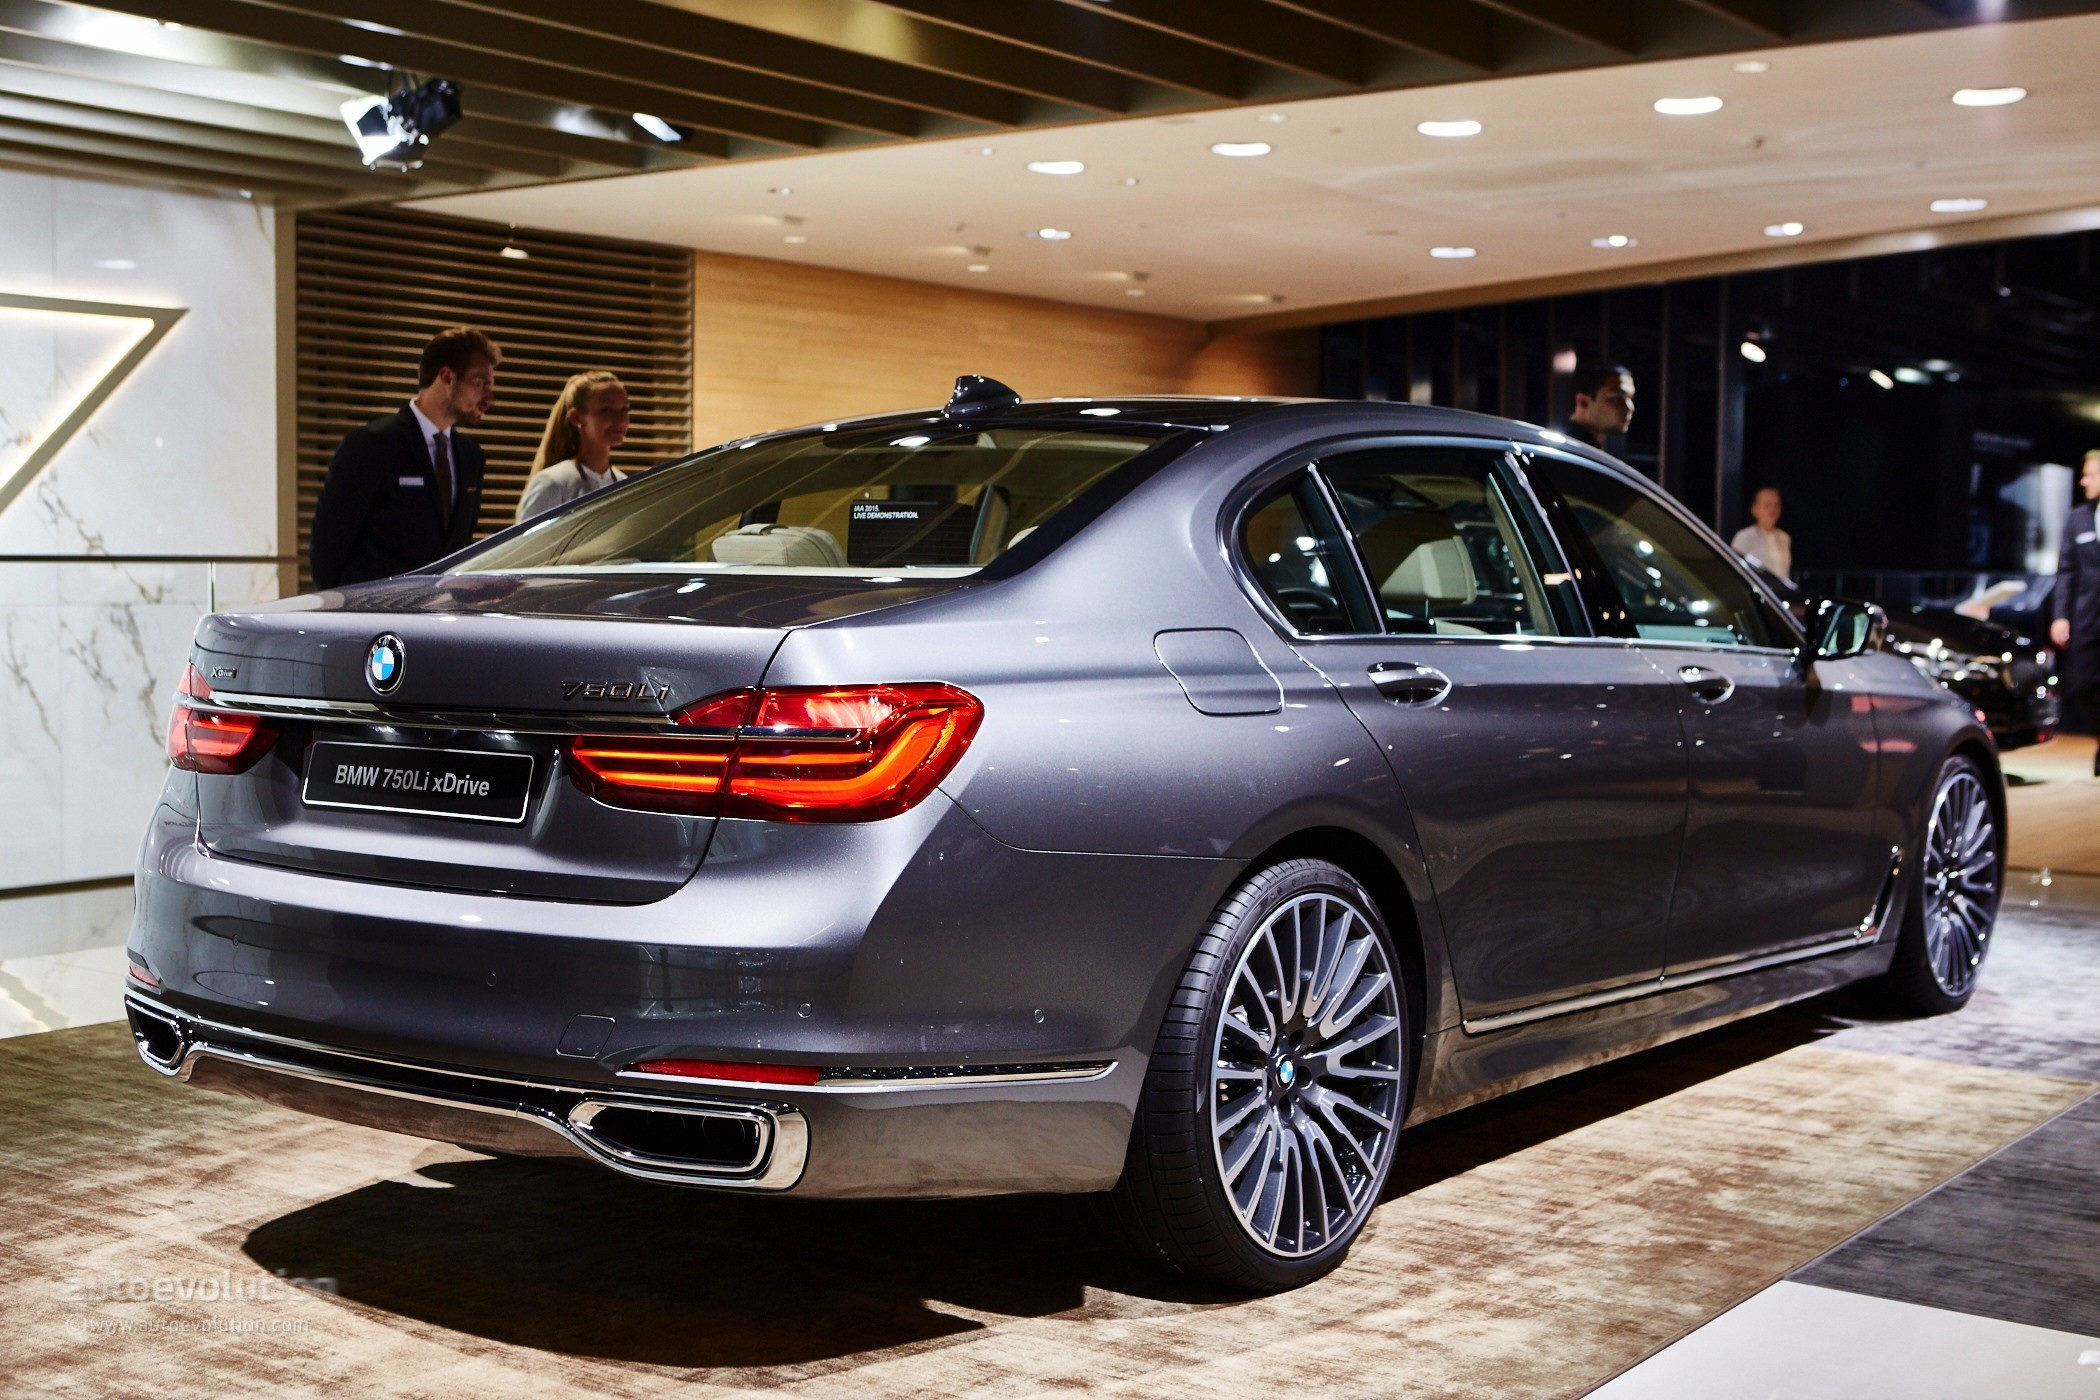 2016 Bmw 7 Series Shows Up In The Metal At Frankfurt Celebrates World Debut Autoevolution